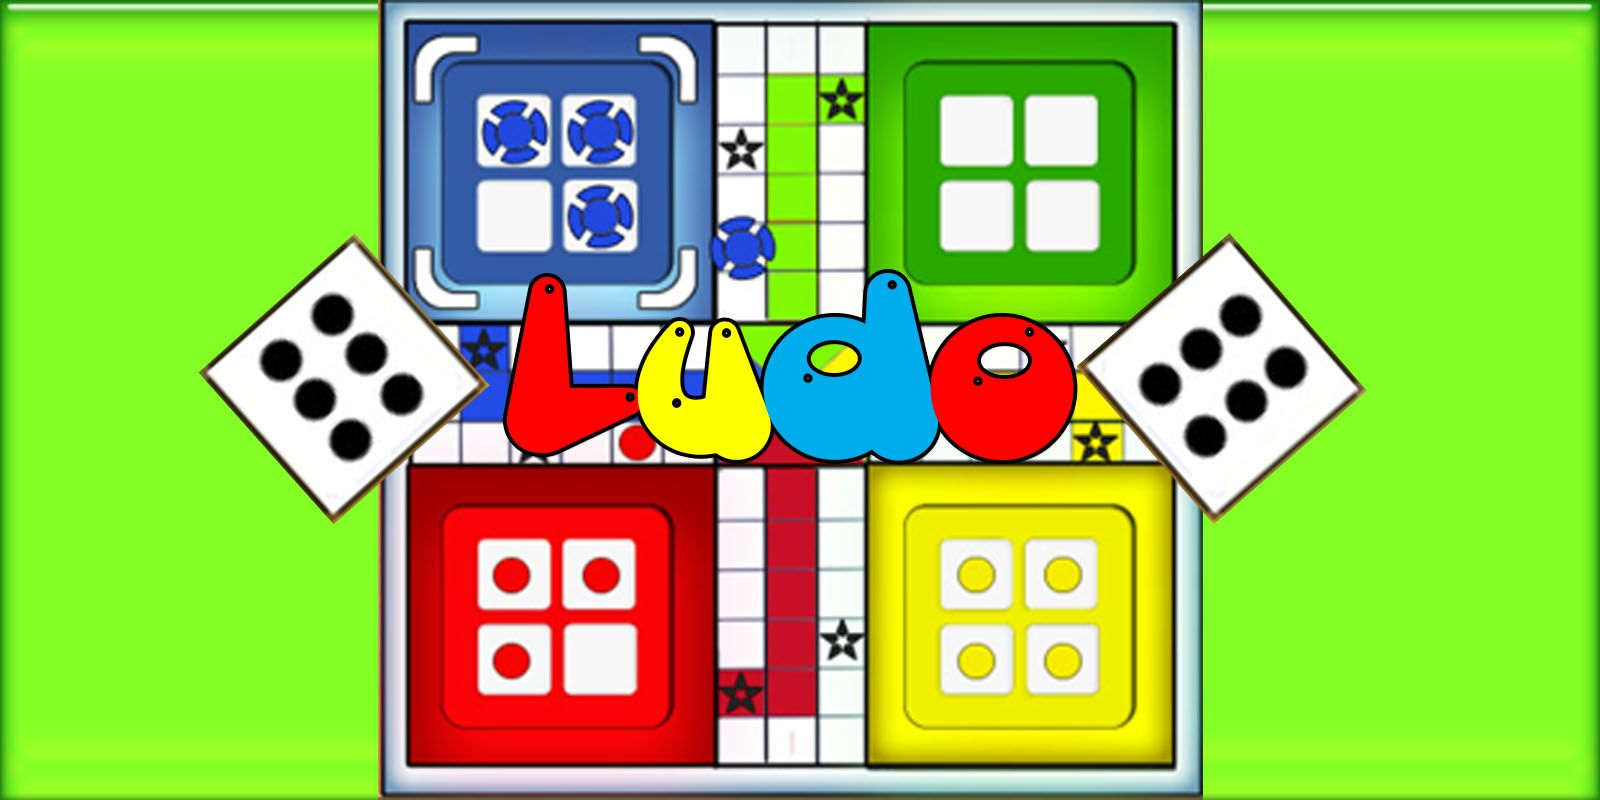 Ludo Unity Source Code | Marketplace to Buy Unity3D projects